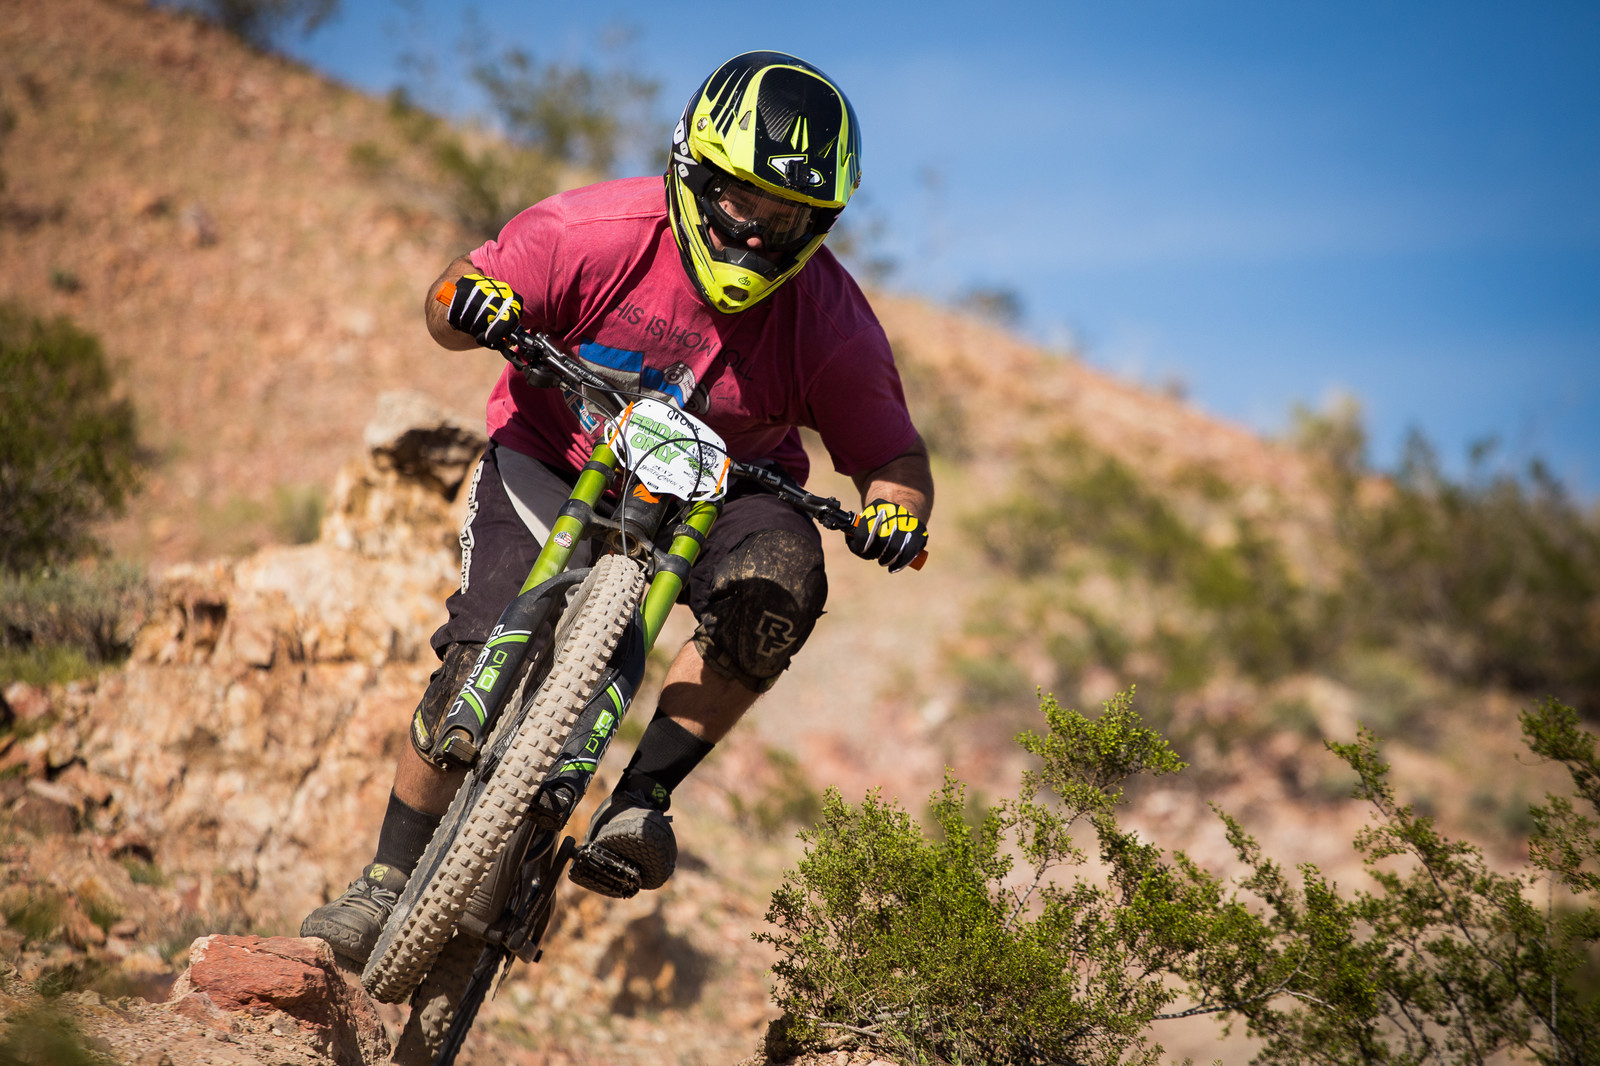 2017 Reaper Madness DH at Bootleg Canyon-37 - 2017 Reaper Madness DH Photos - Mountain Biking Pictures - Vital MTB